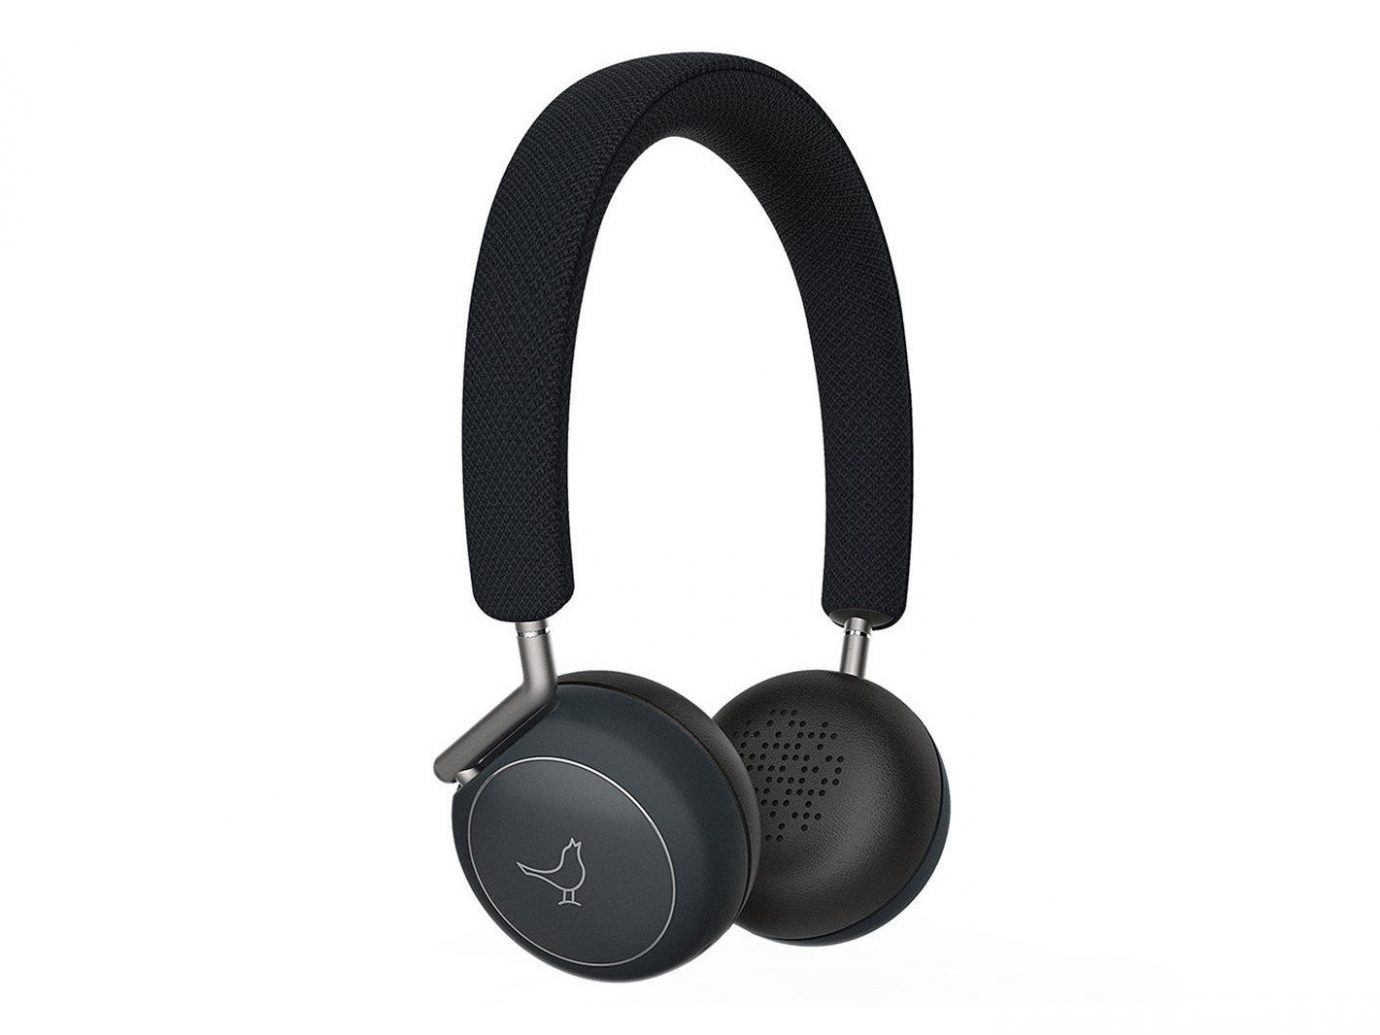 Buy Libratone Q Adapt On-Ear Wireless Headphones on Amazon